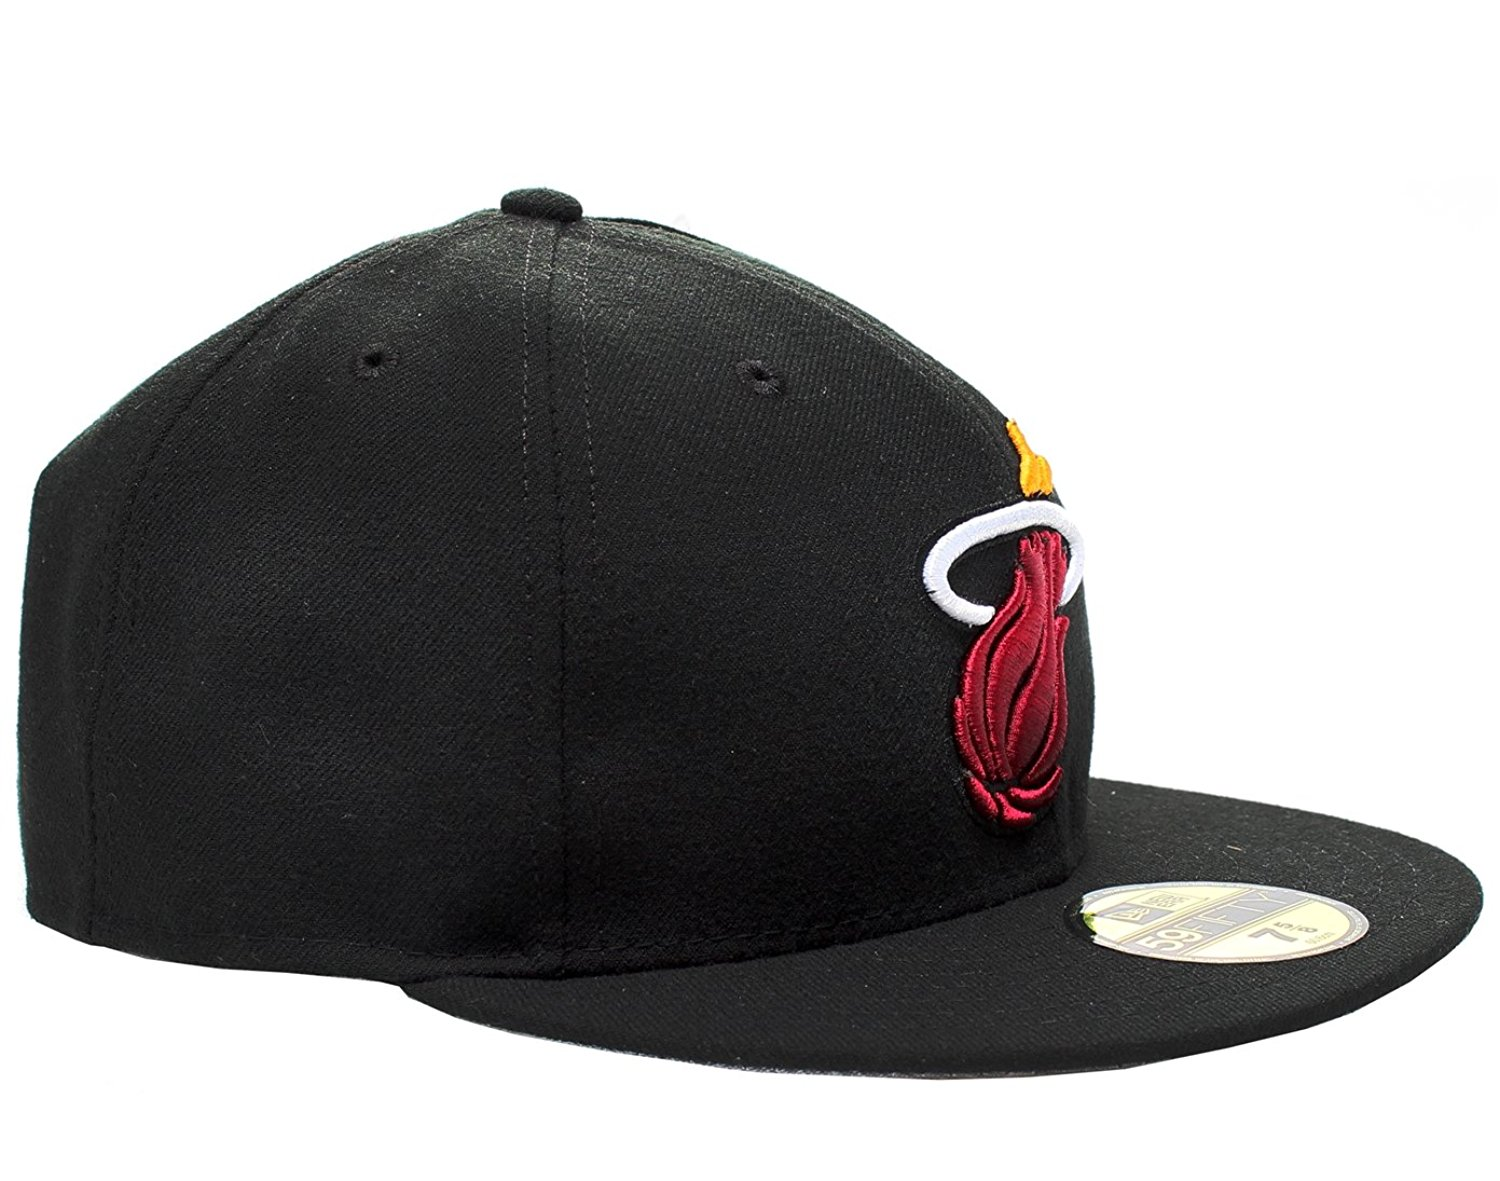 huge discount 6b9b1 667f5 Get Quotations · Miami Heat 5950 HWC 2013 Playoffs Black Fitted Hat